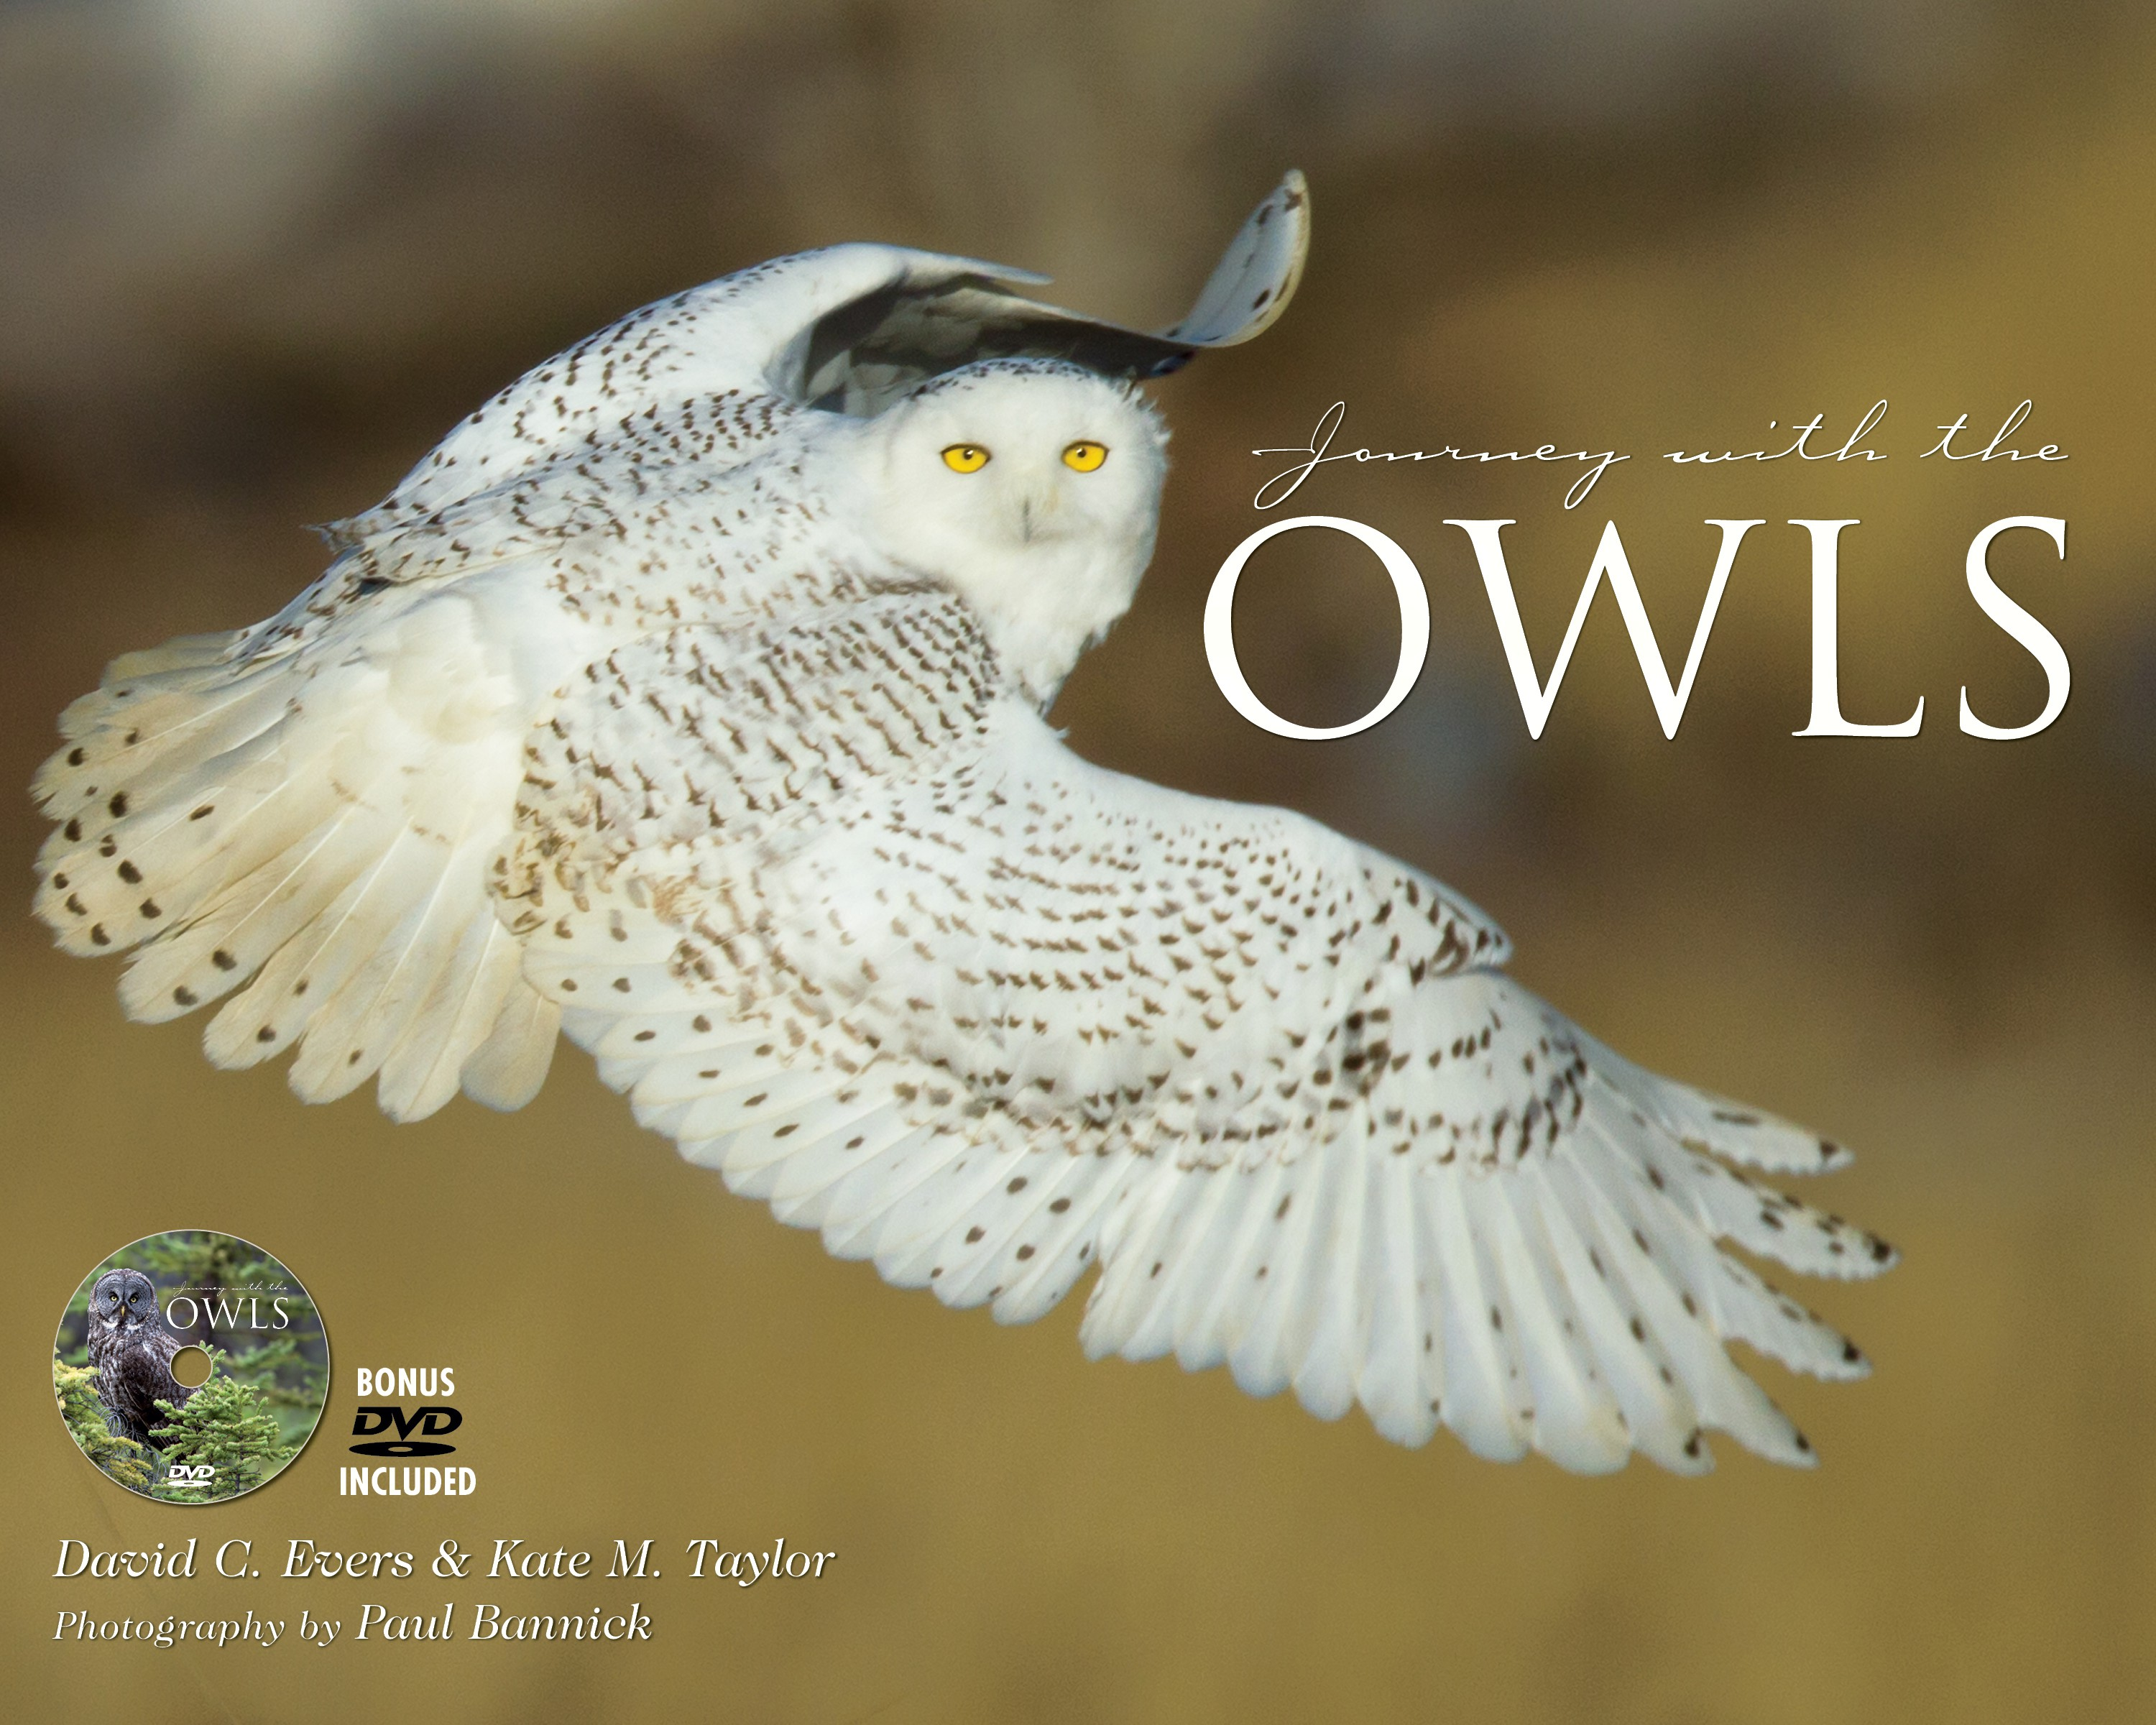 Journey with the Owls (book/dvd)